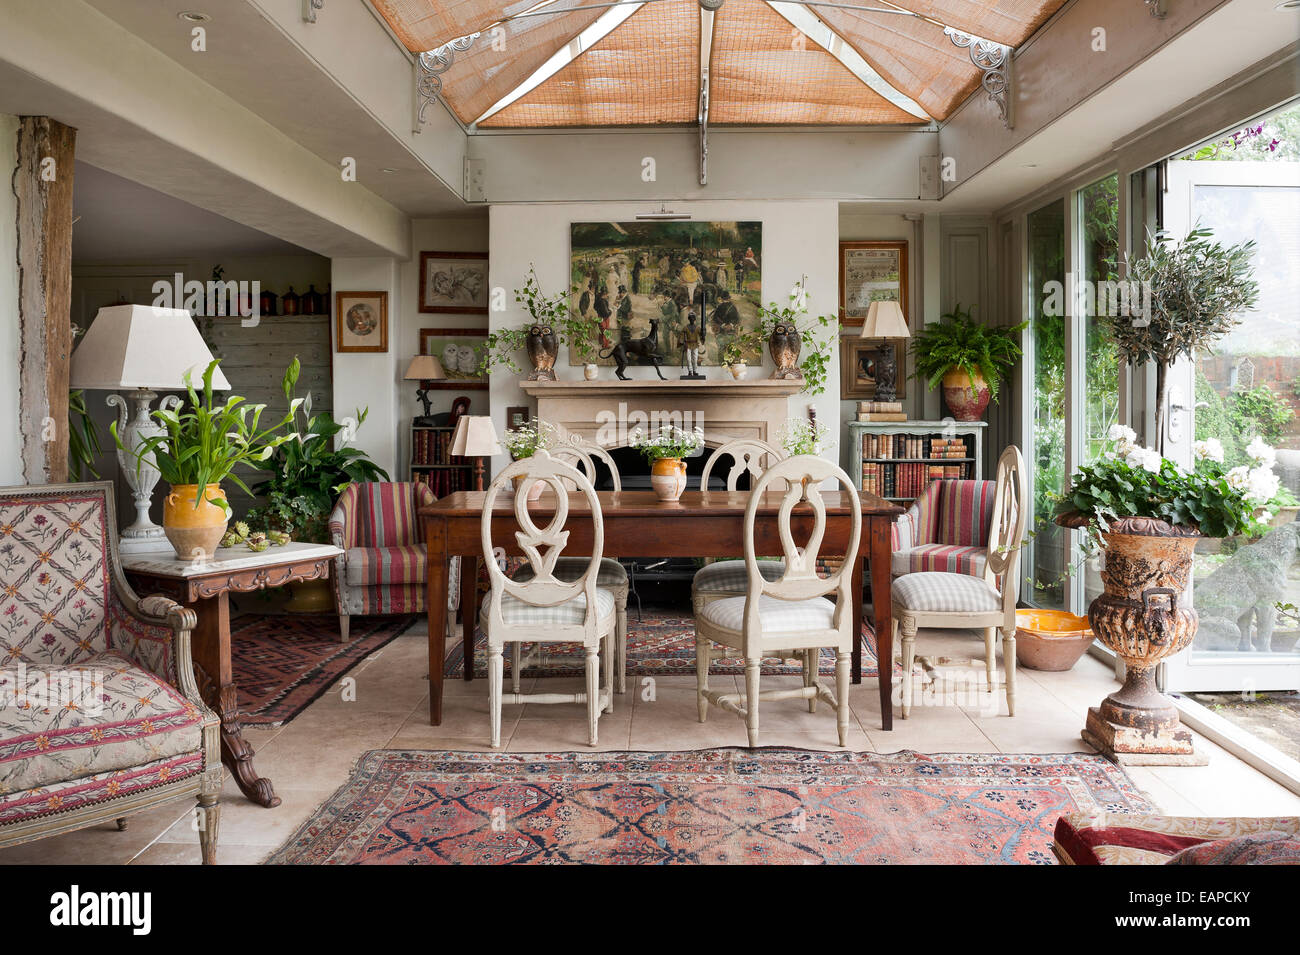 Roundback Wooden Dining Chairs Around Antique Farmhouse Table In Room With Persian Carpets And